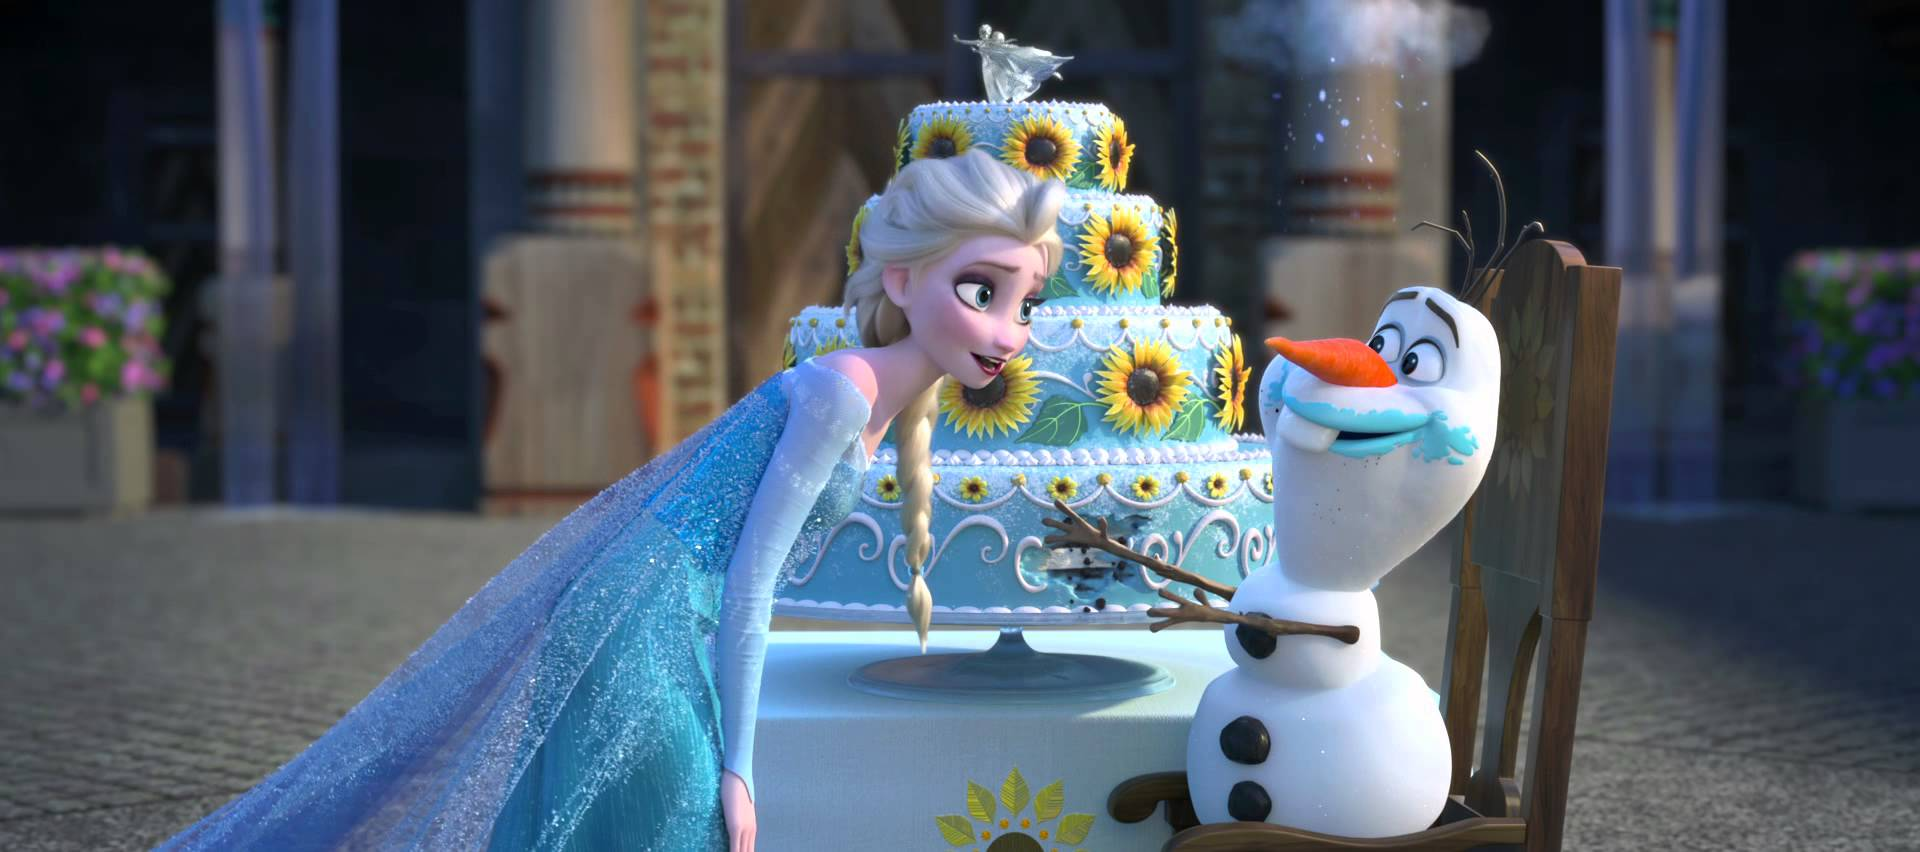 Frozen Fever Wallpapers Movie Hq Frozen Fever Pictures 4k